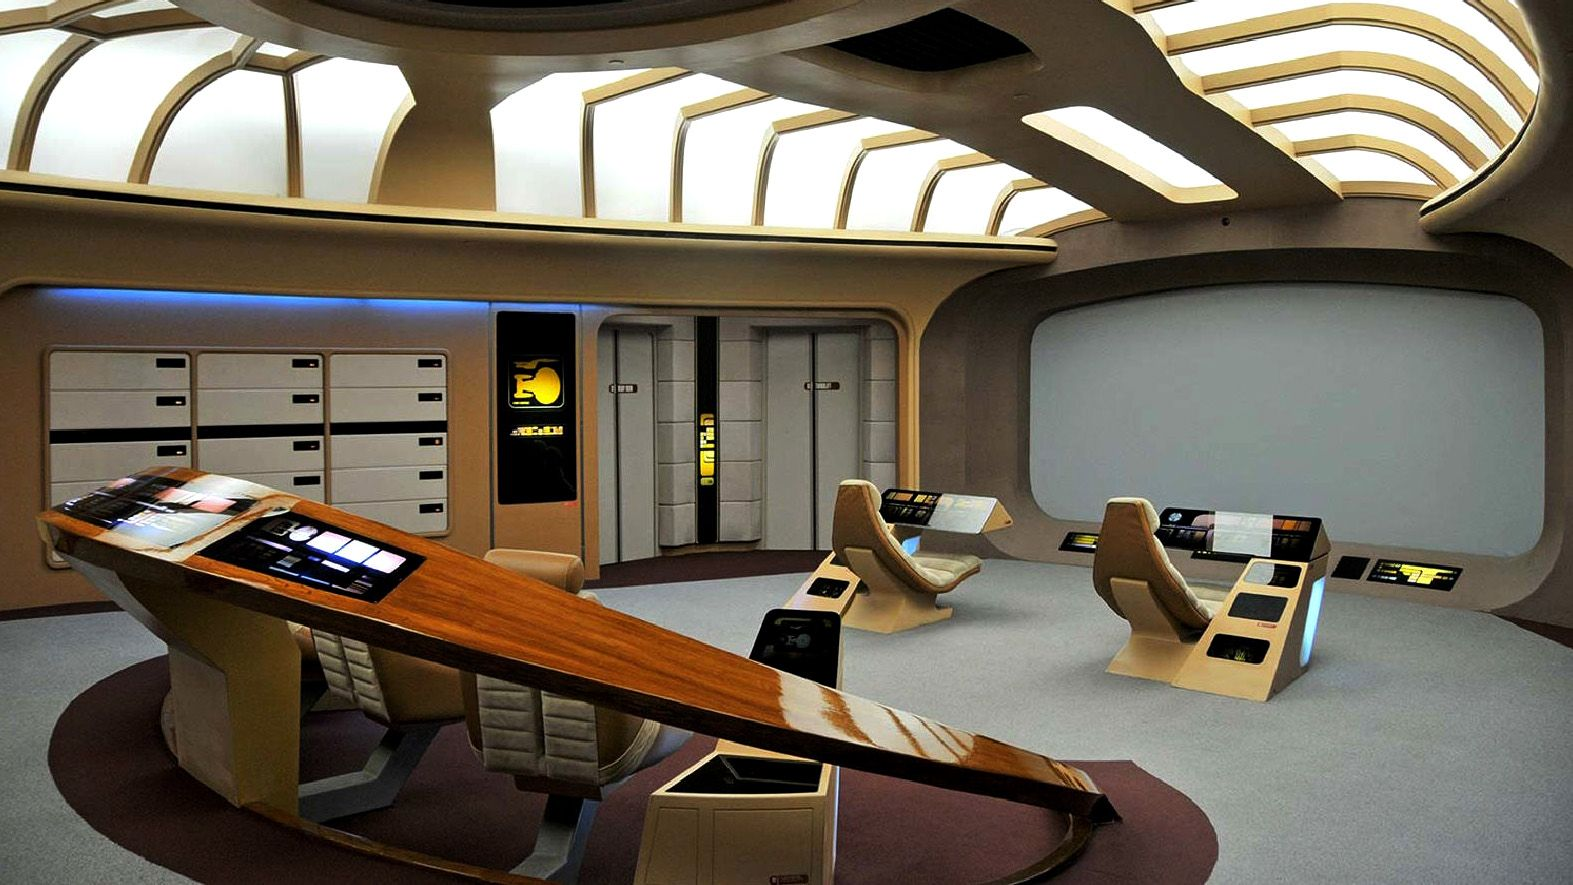 New Starship Foundation is a 501c3 organization created to